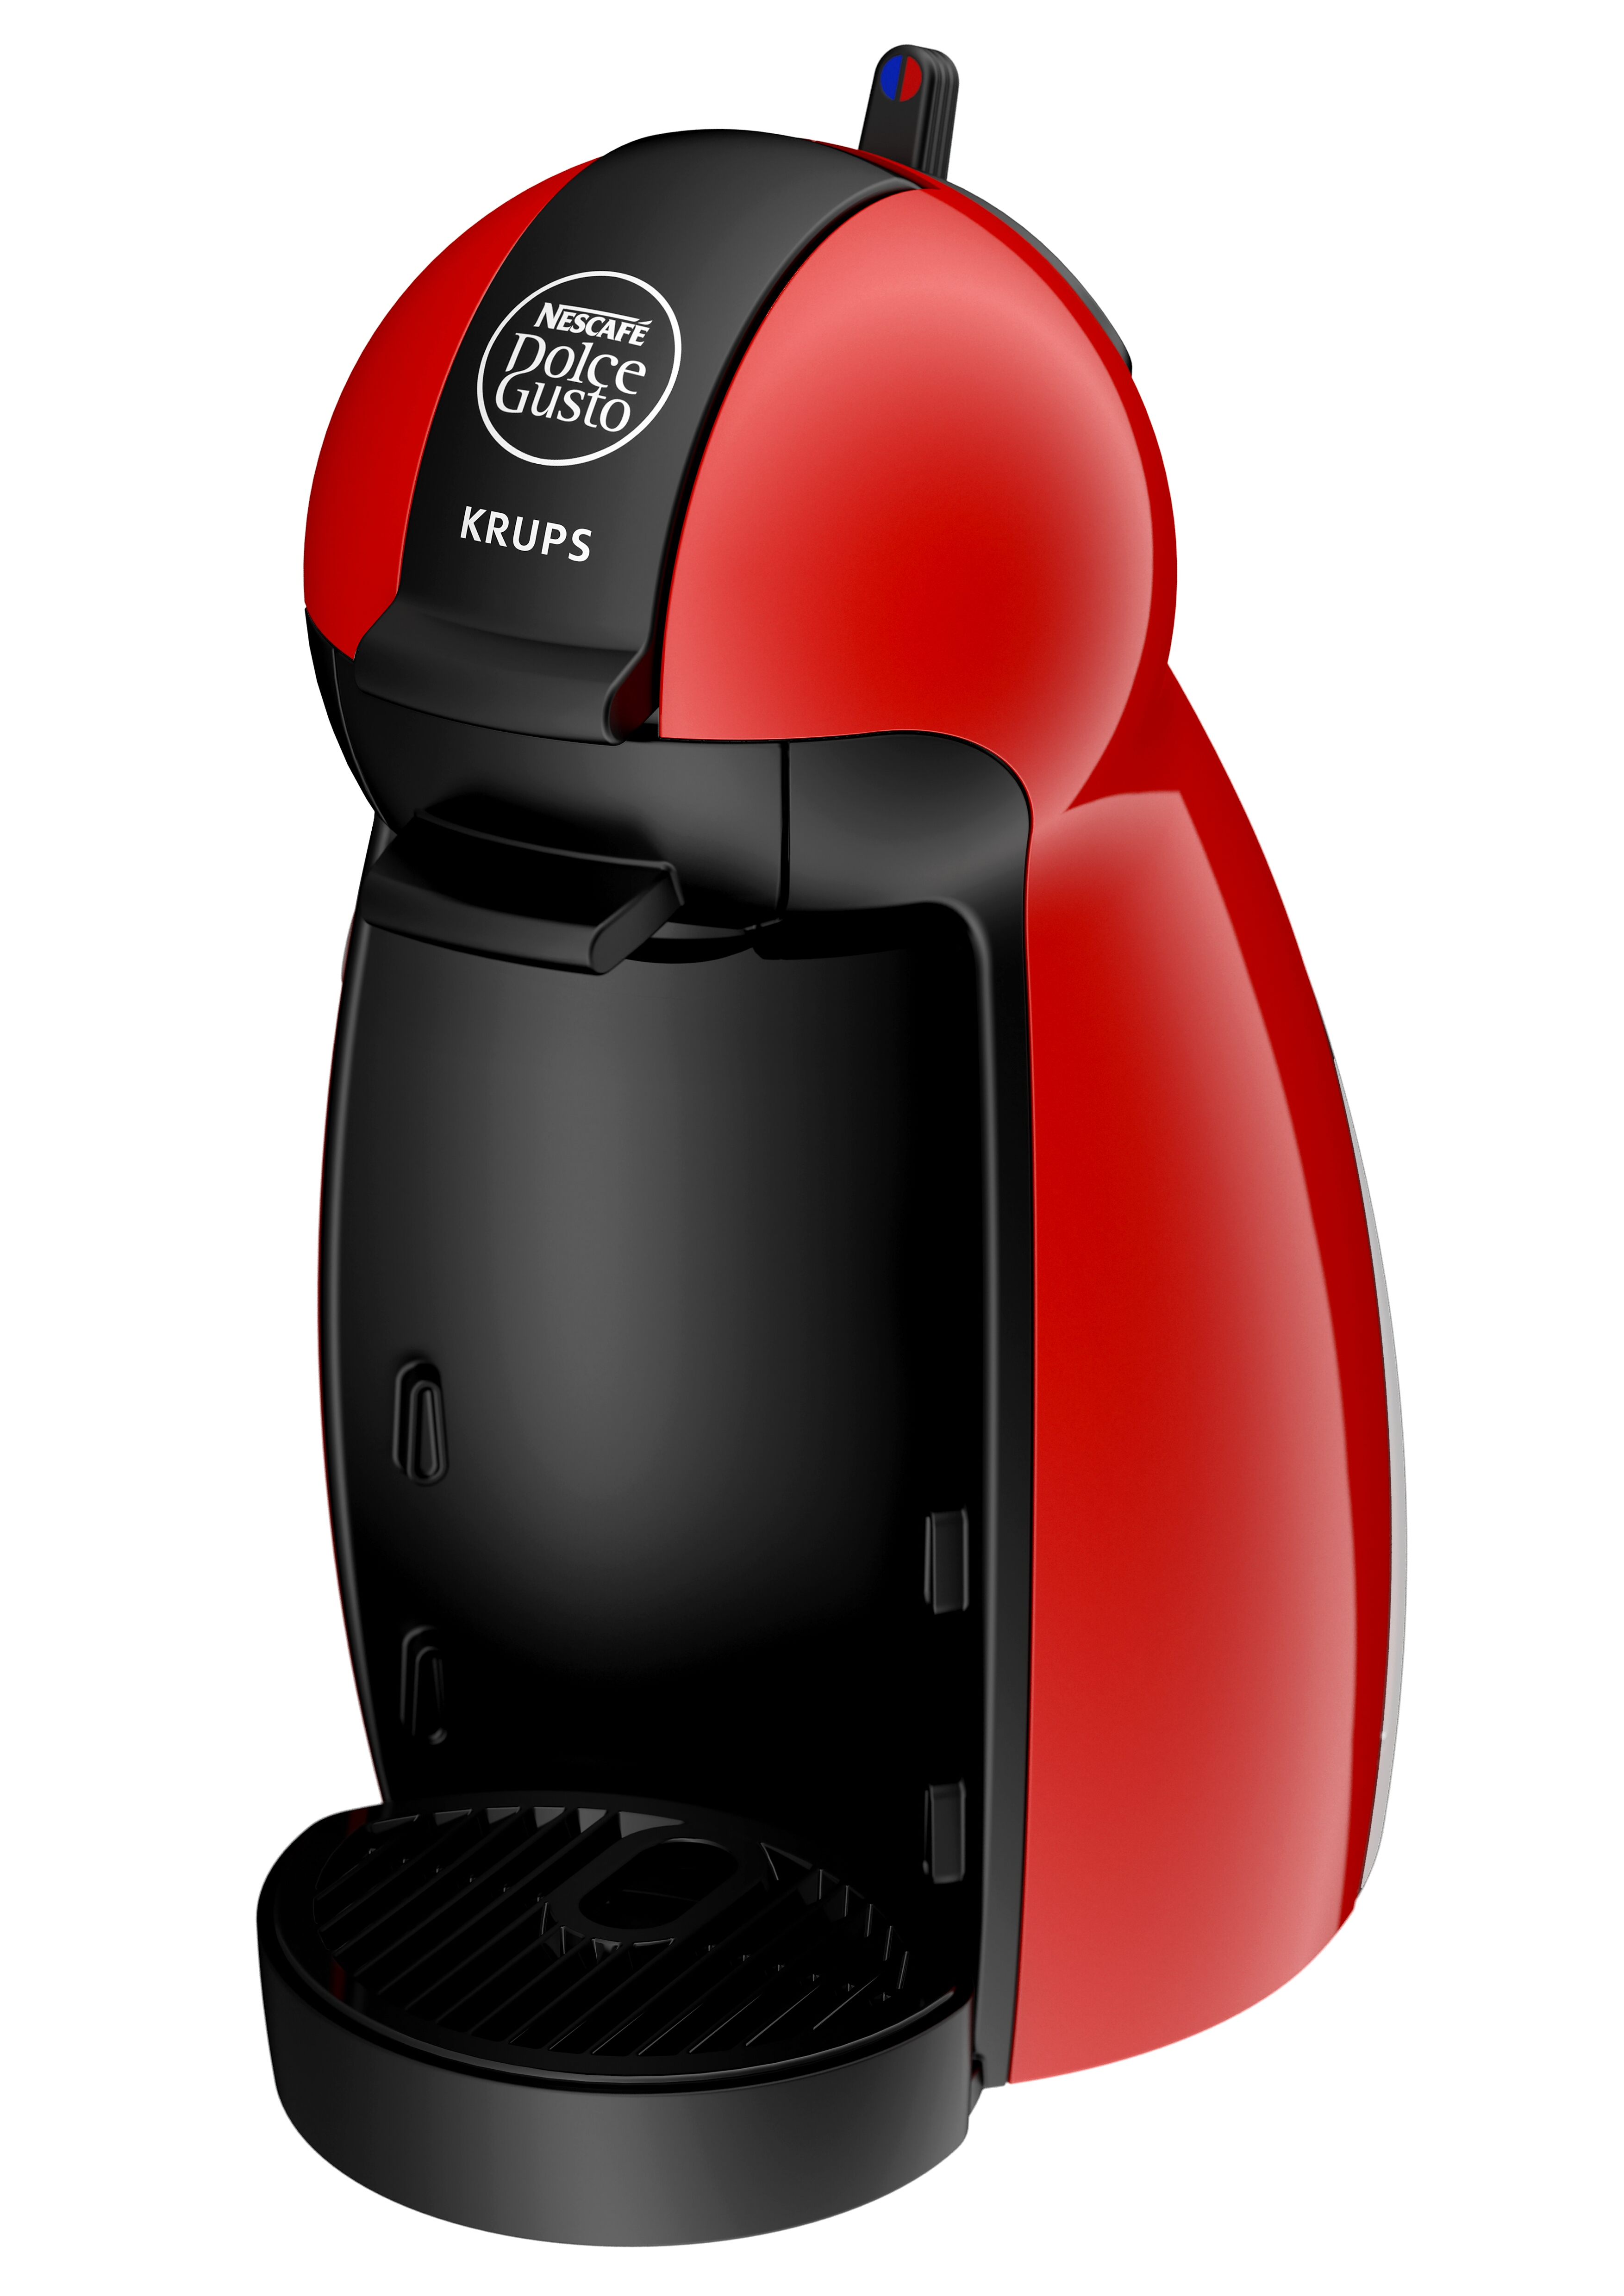 coffee machine dolce gusto pod piccolo krups kp100640 red nescafe beverage maker ebay. Black Bedroom Furniture Sets. Home Design Ideas